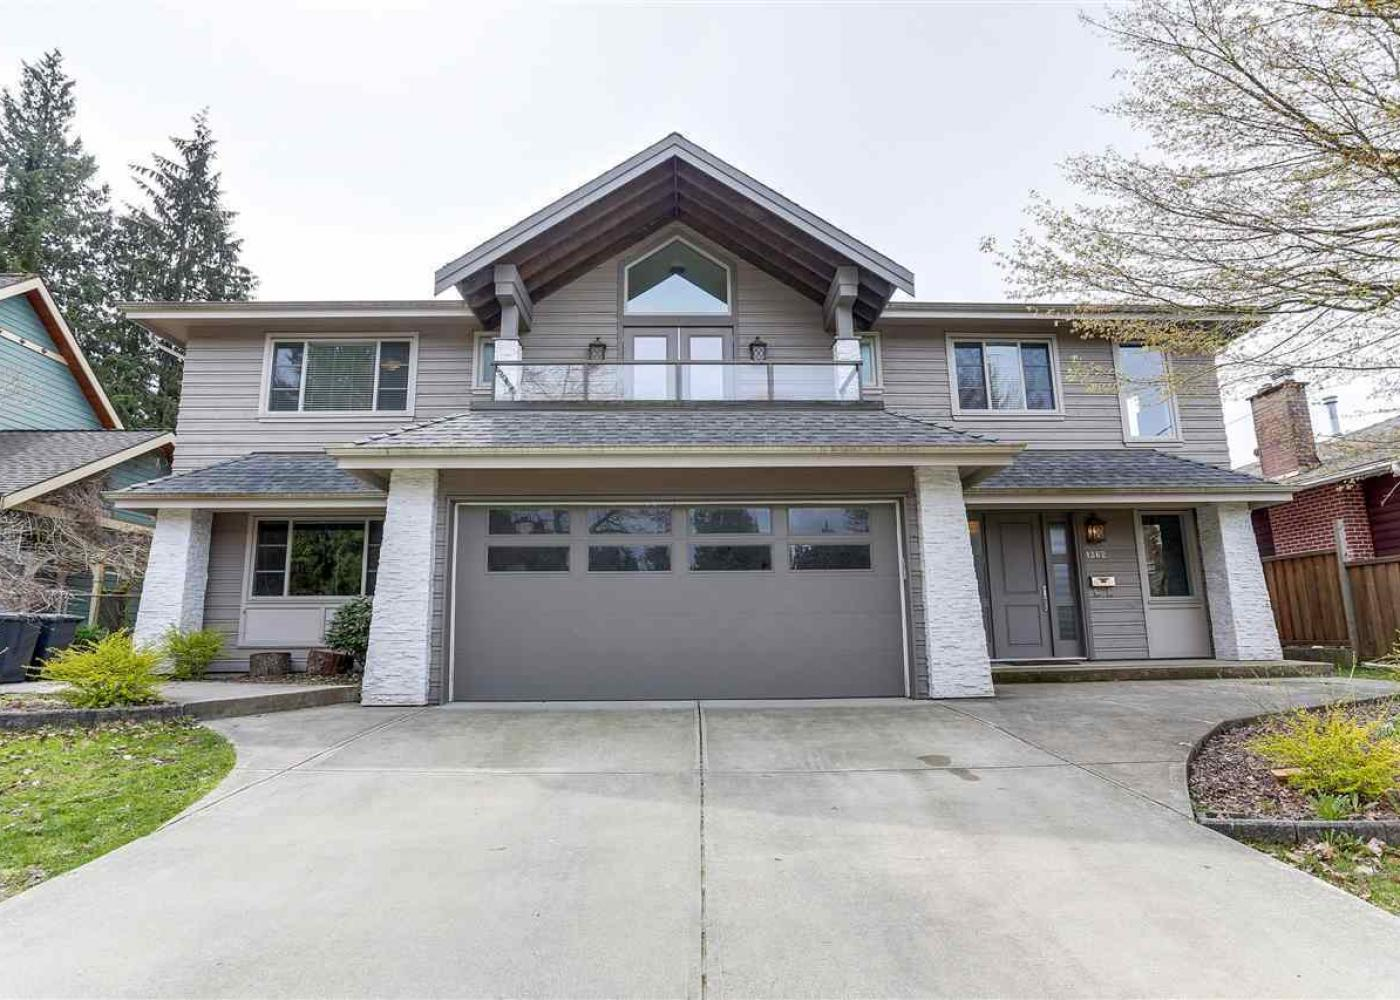 1362 Willow Way, Harbour Chines, Coquitlam